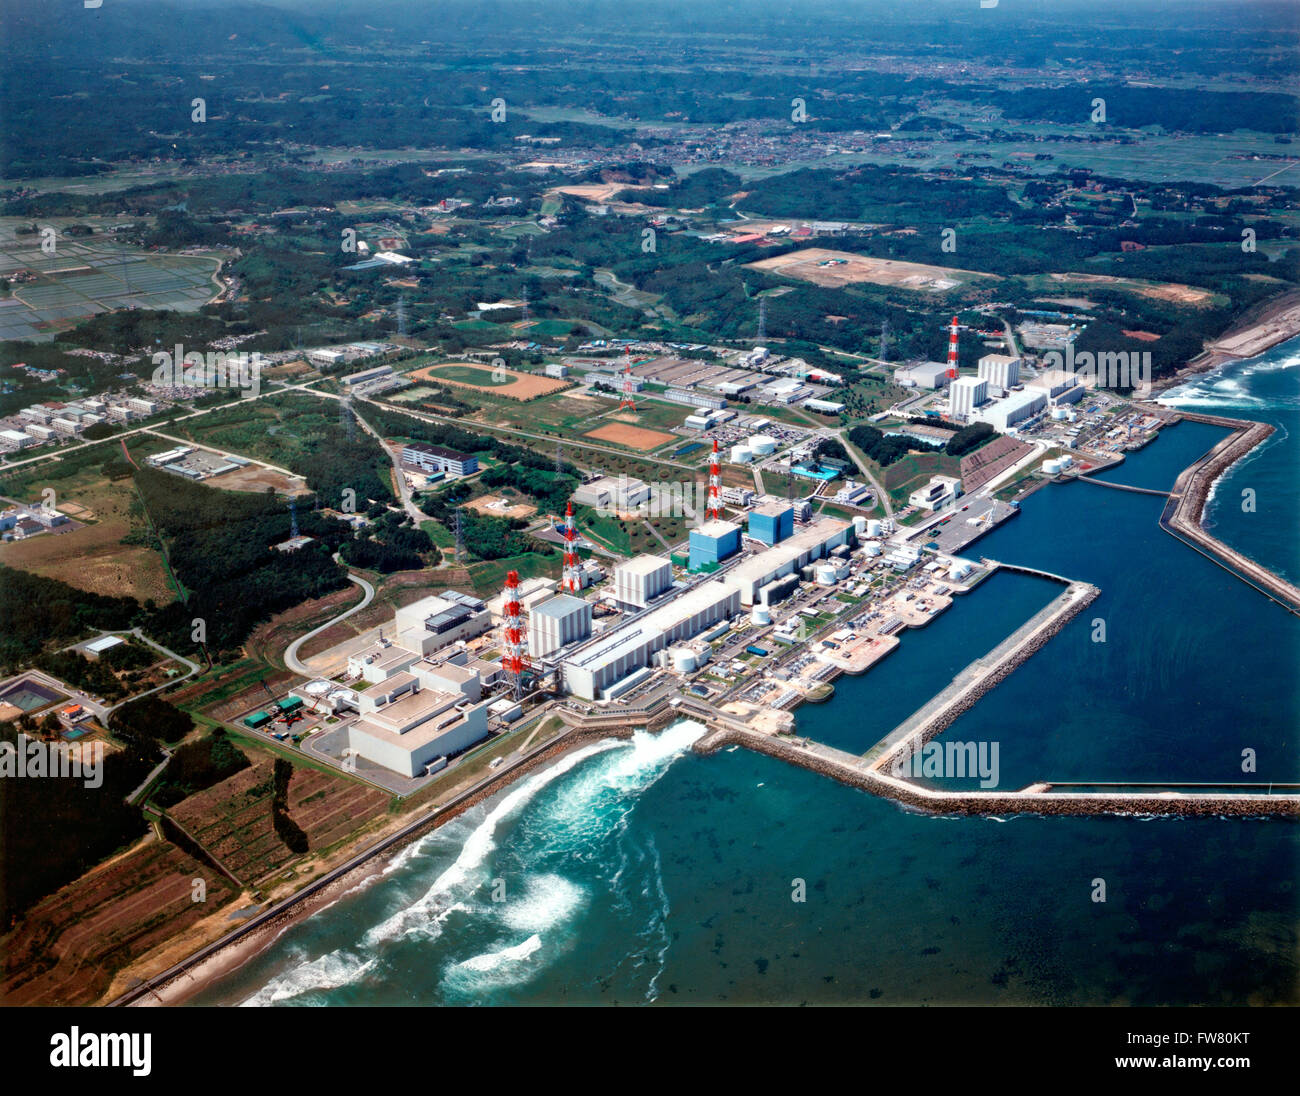 Aerial view of the Fukushima Daiichi Nuclear Power Station February 21, 2007 in Okuma, Japan. The plant suffered - Stock Image